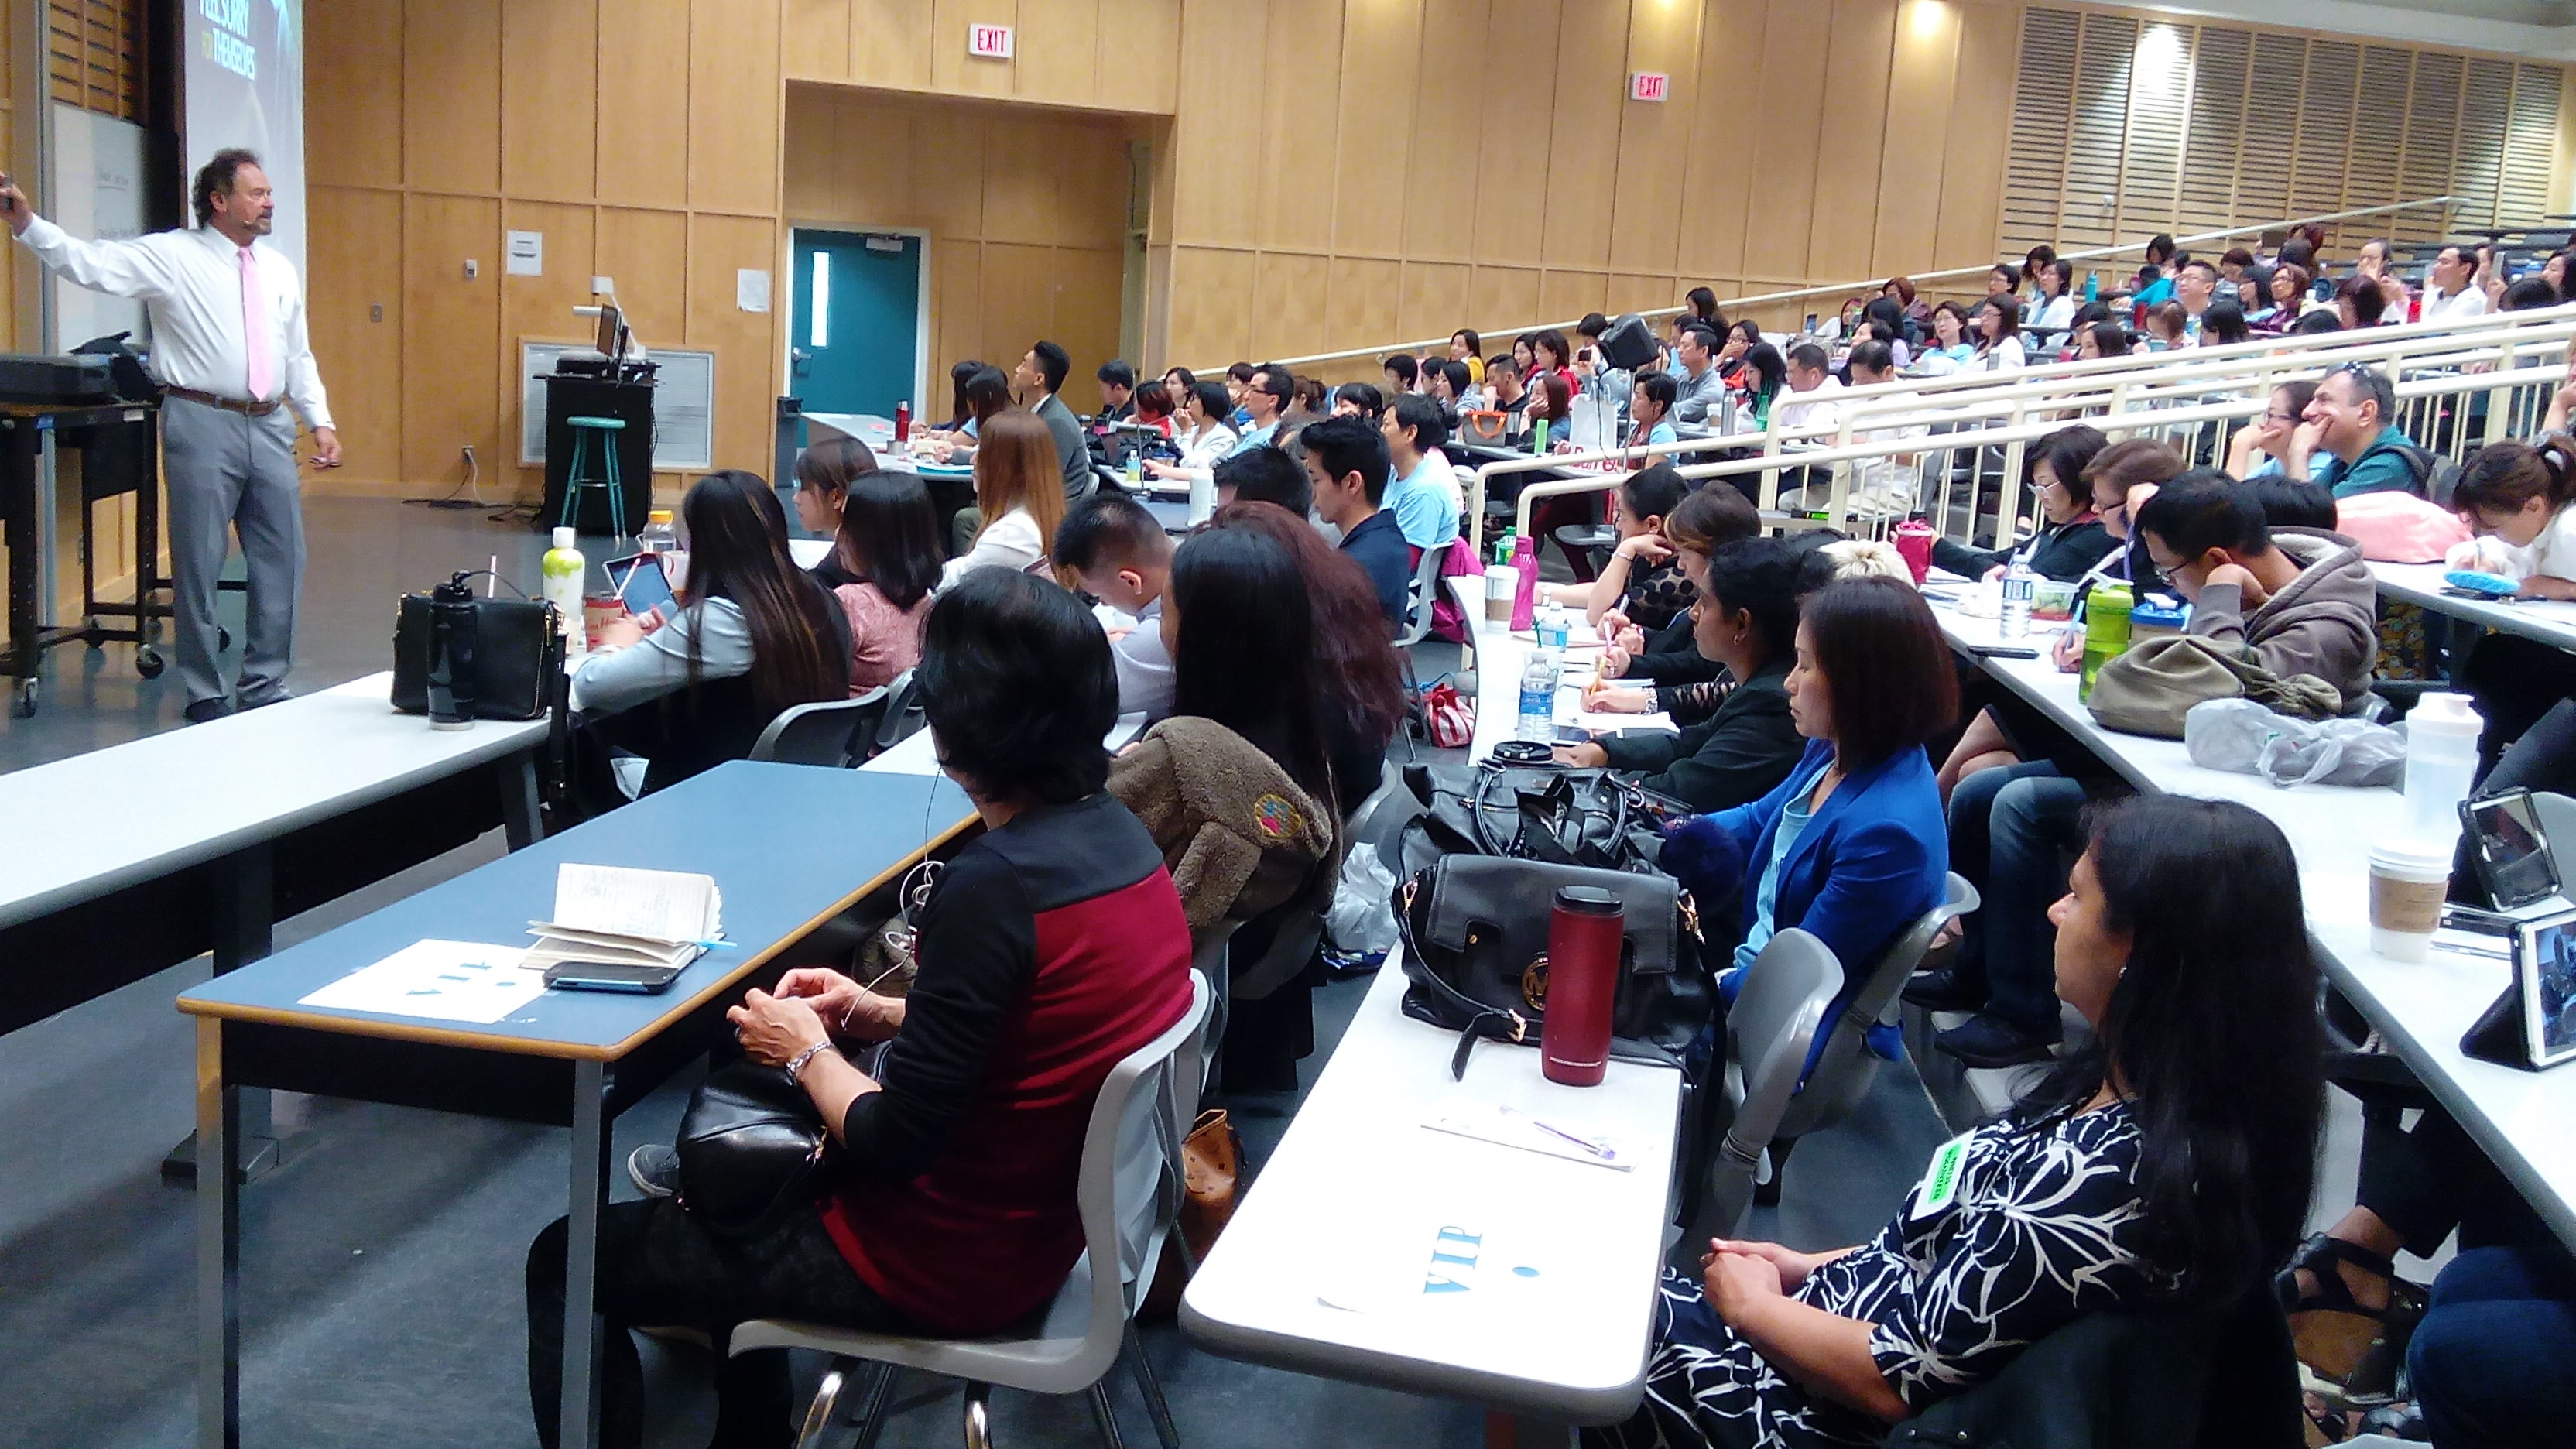 Both lecture rooms are packed for Dennis Frank's training